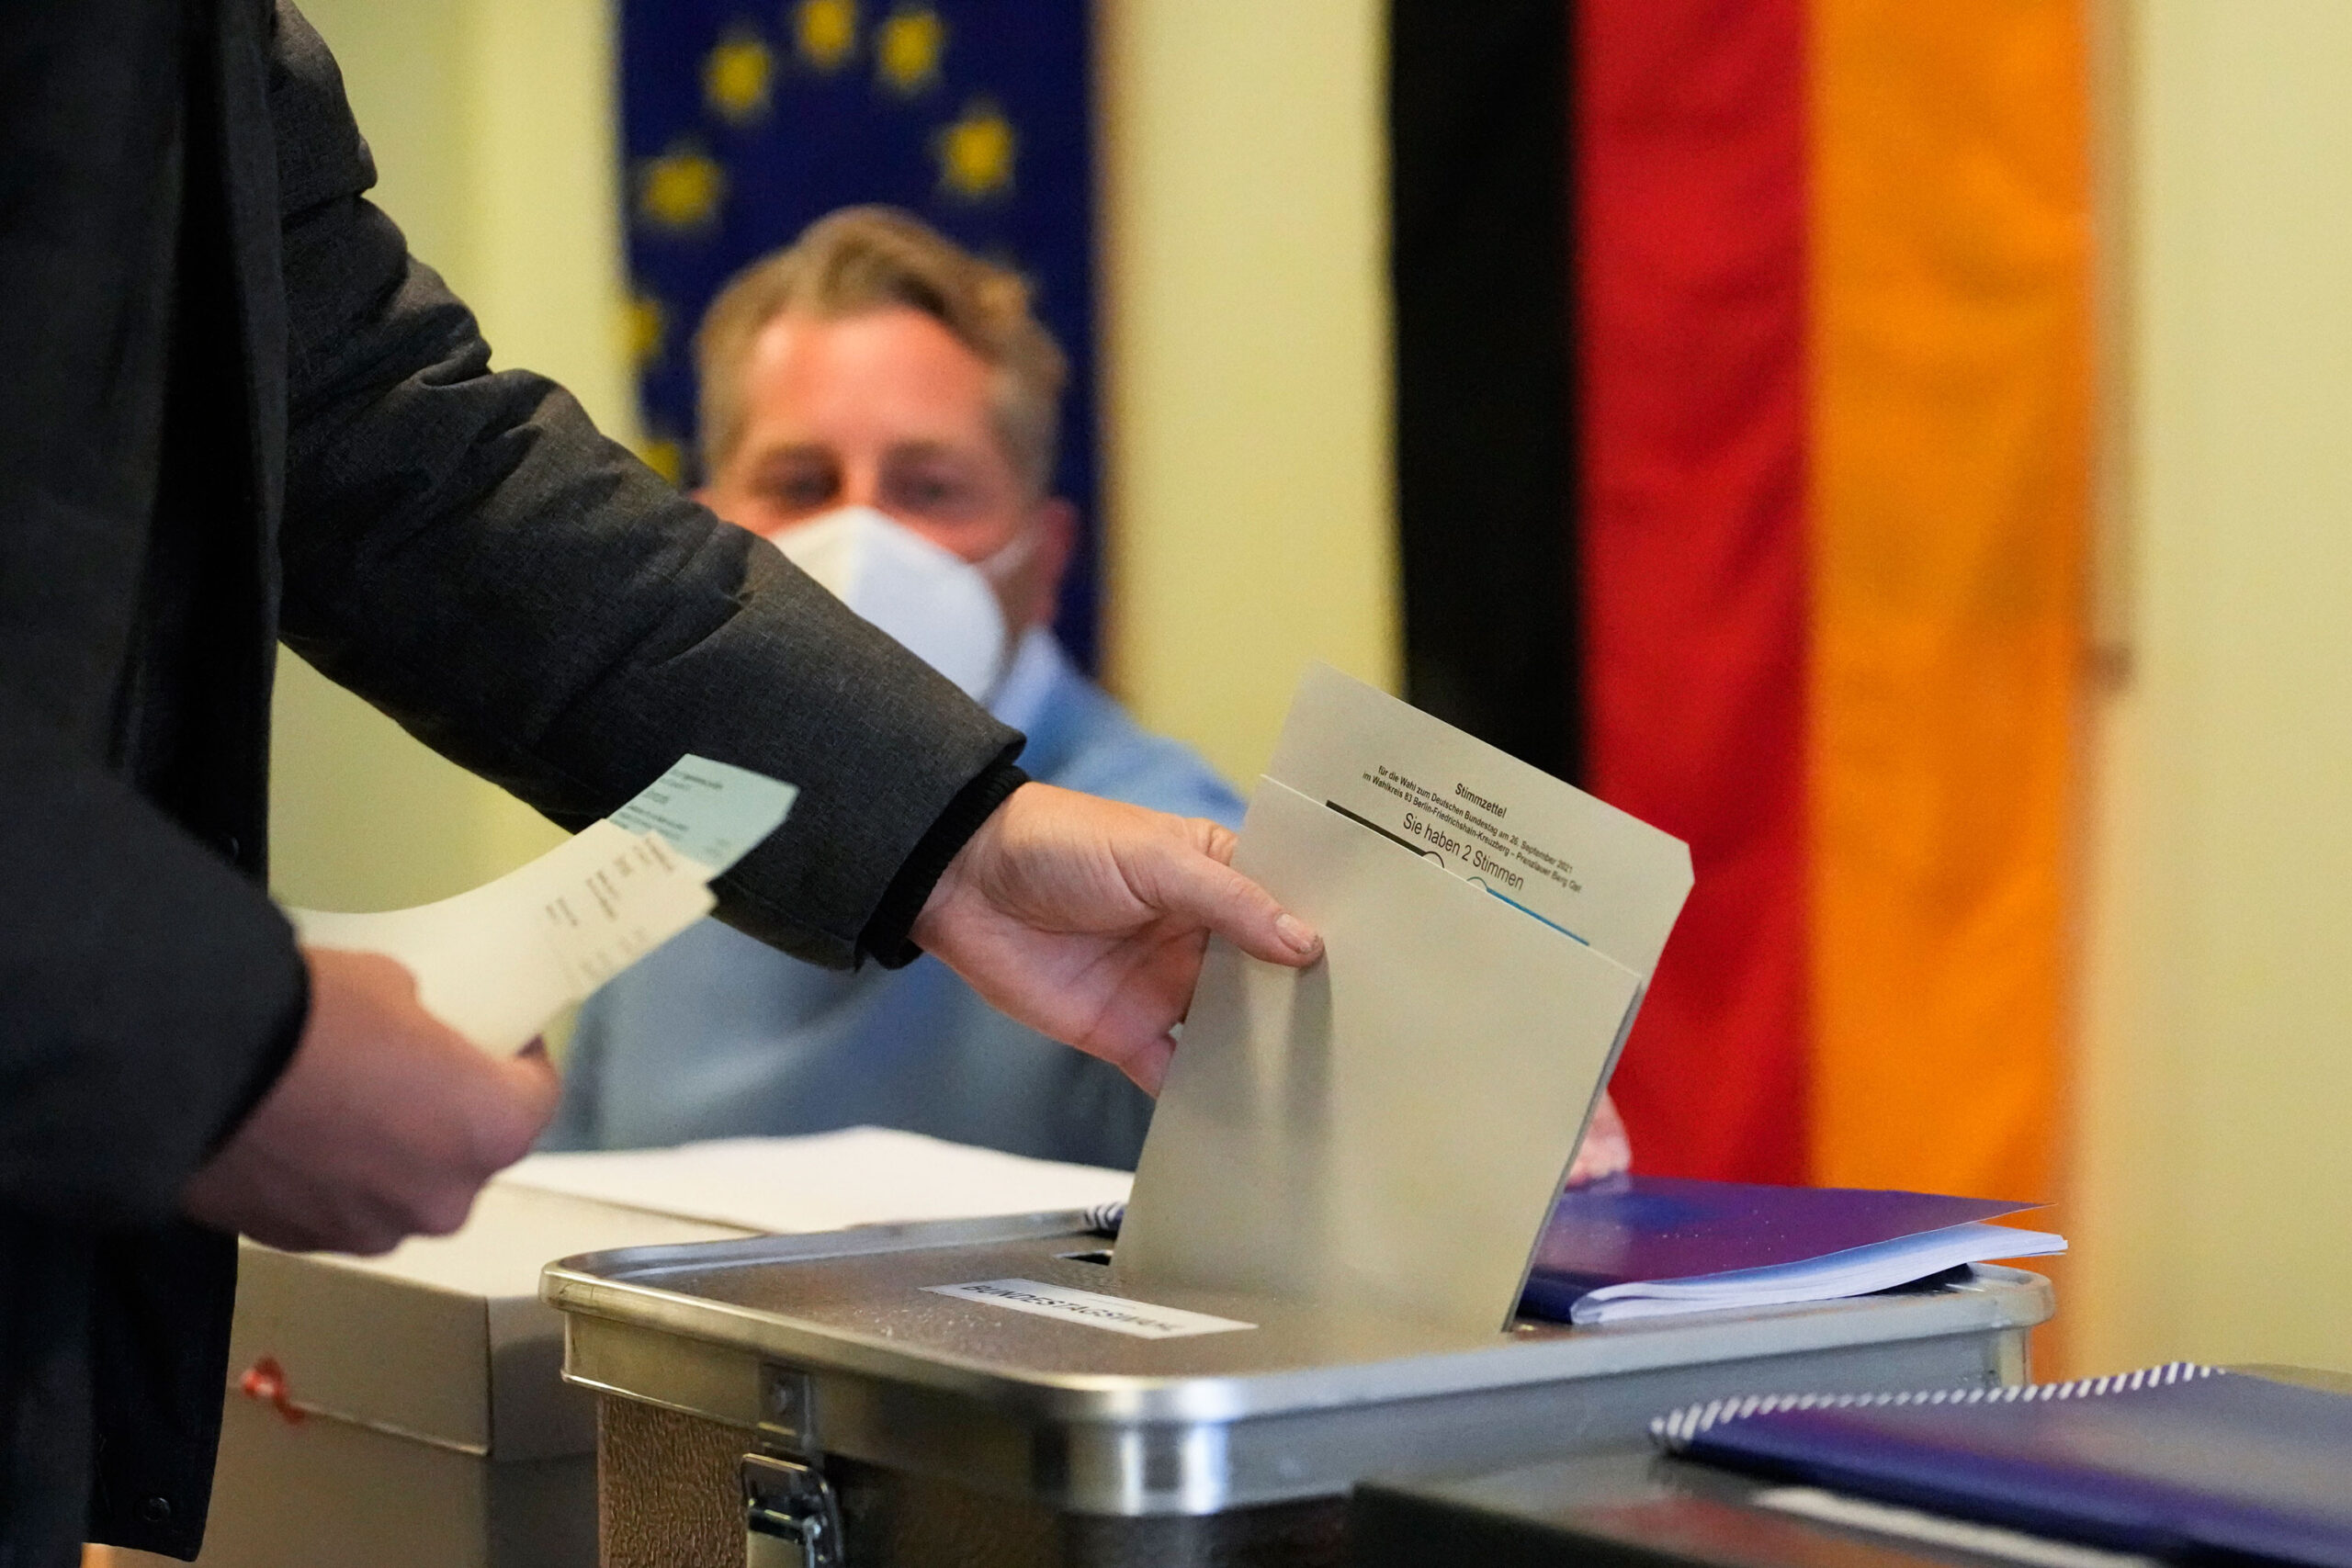 <i>Markus Schreiber/AP</i><br/>A man casts his vote in Germany's national parliamentary election at a polling station in Berlin